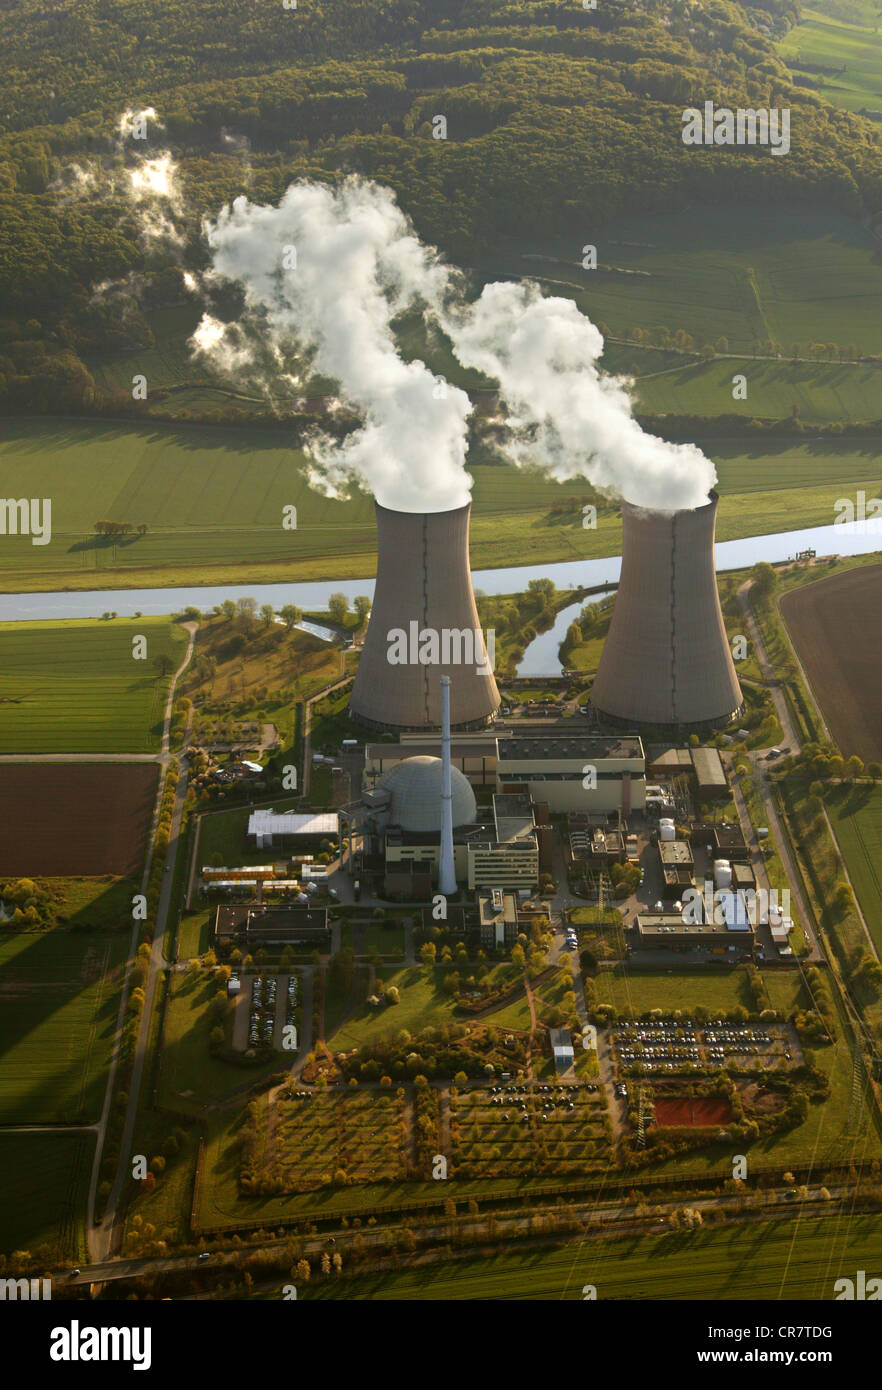 Aerial view, Grohnde Nuclear Power Plant, KWG, Weser River, Grohnde, Lower Saxony, Germany, Europe - Stock Image